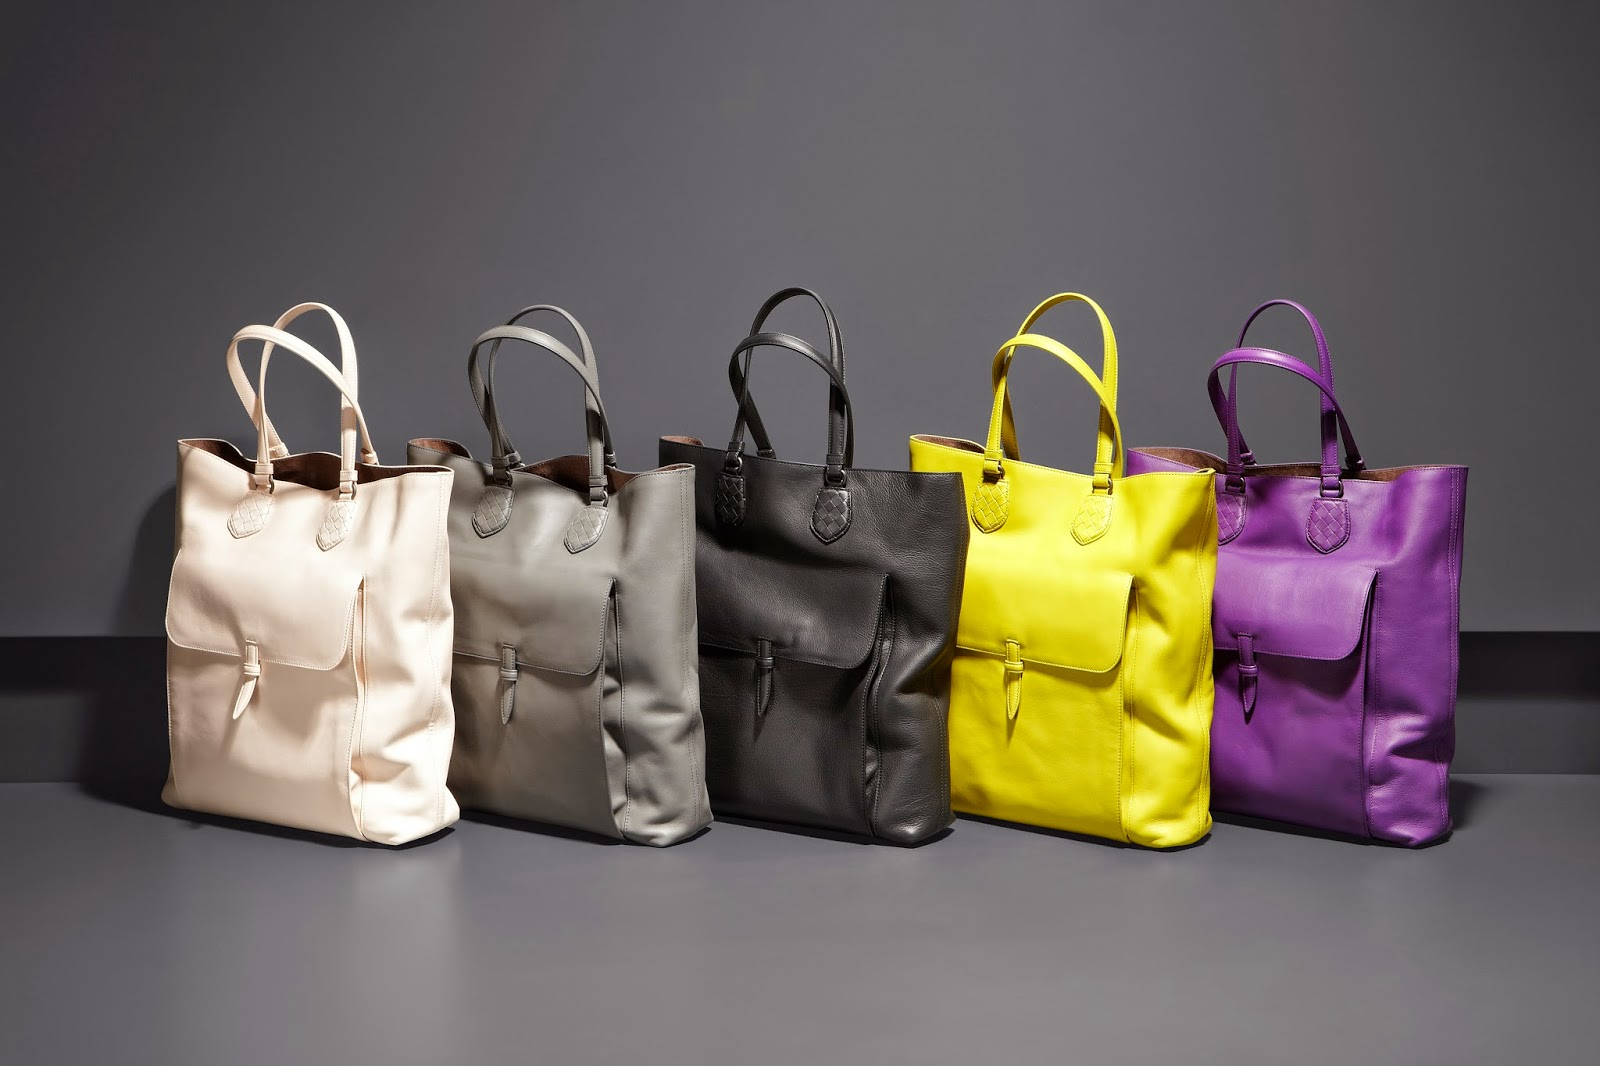 Bottega Veneta's Drap Calf Tote for Fall/Winter 14